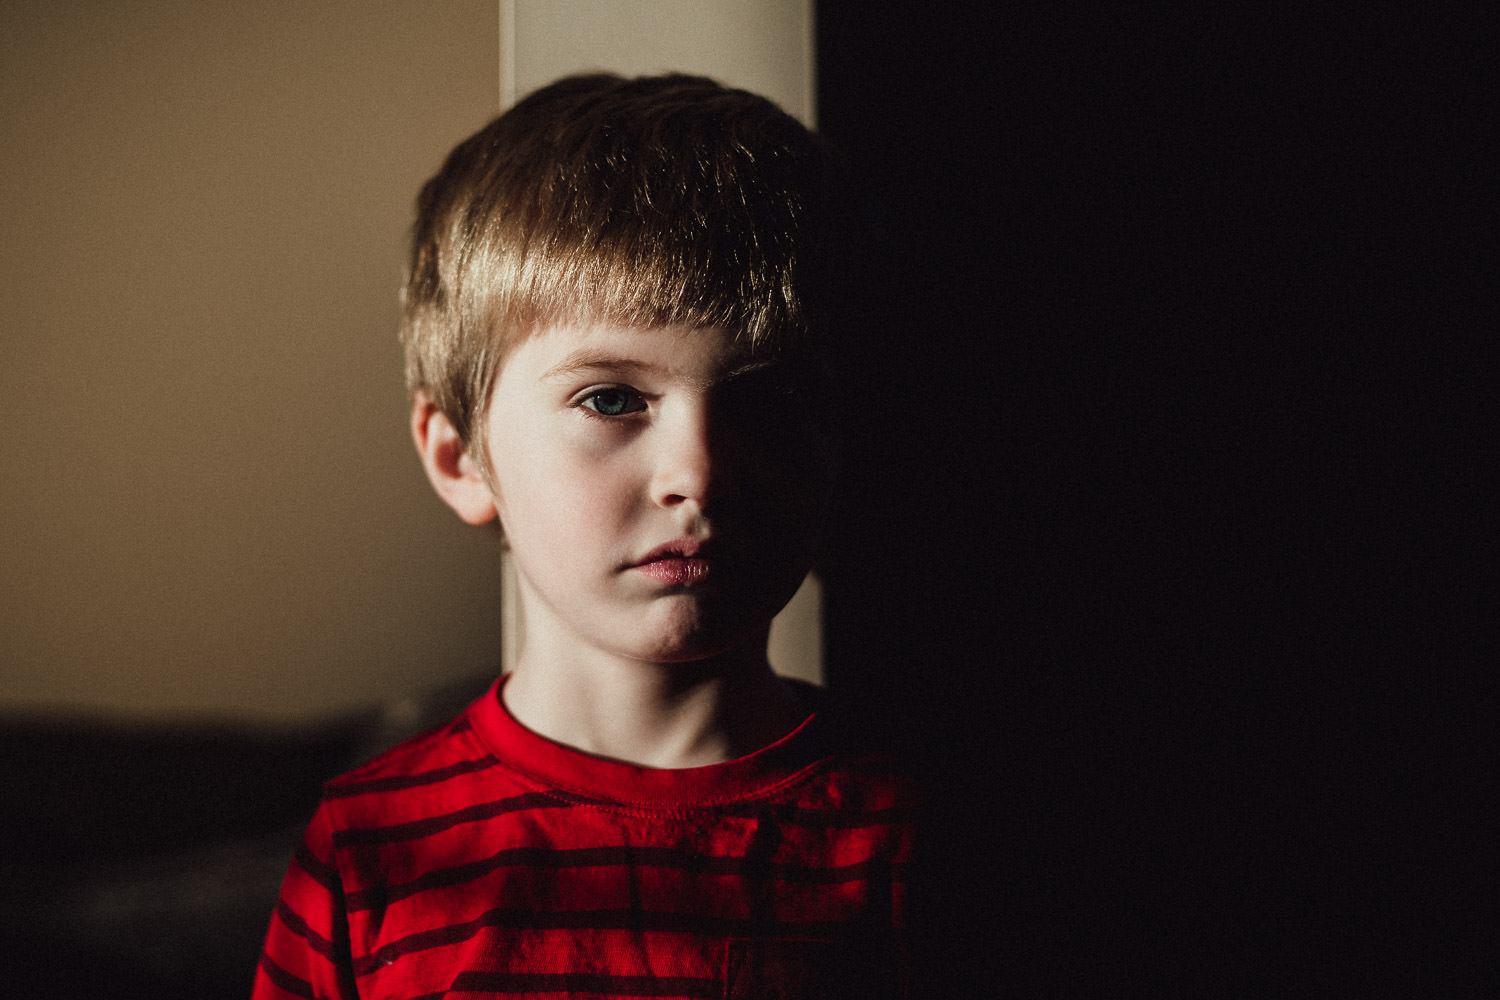 A portrait of a little boy in light and shadow.